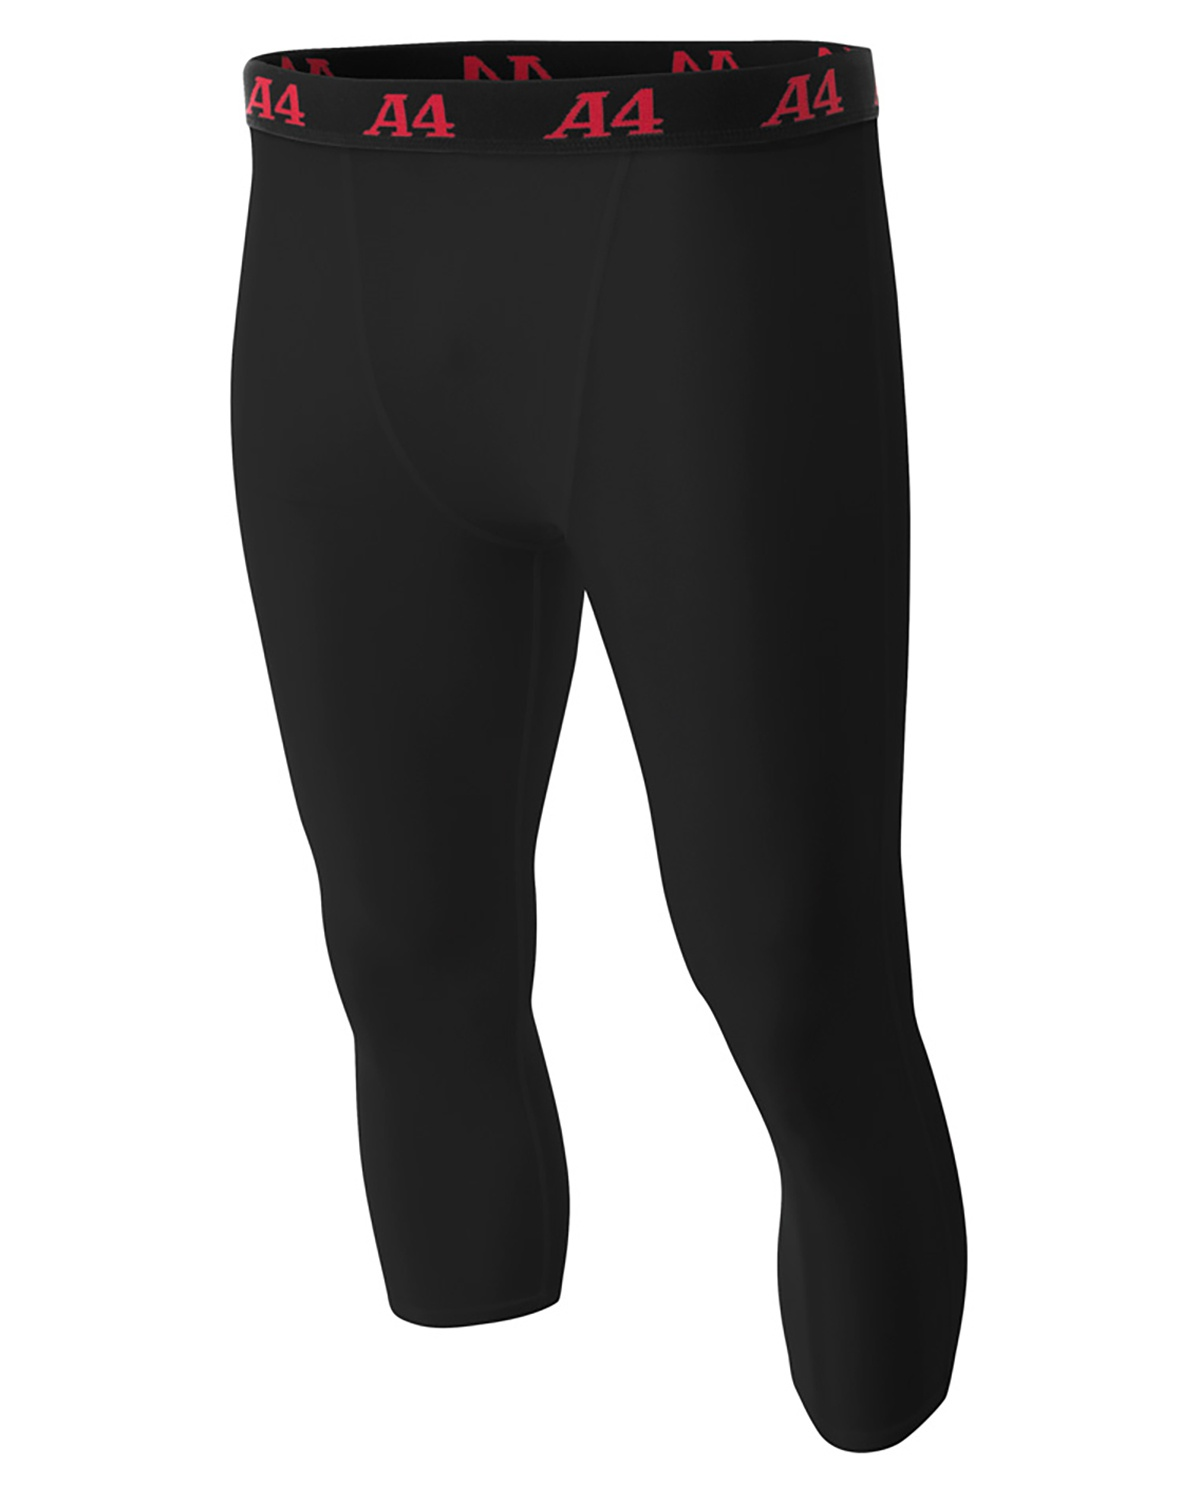 'A4 N6202 Adult Polyester/Spandex Compression Tight'